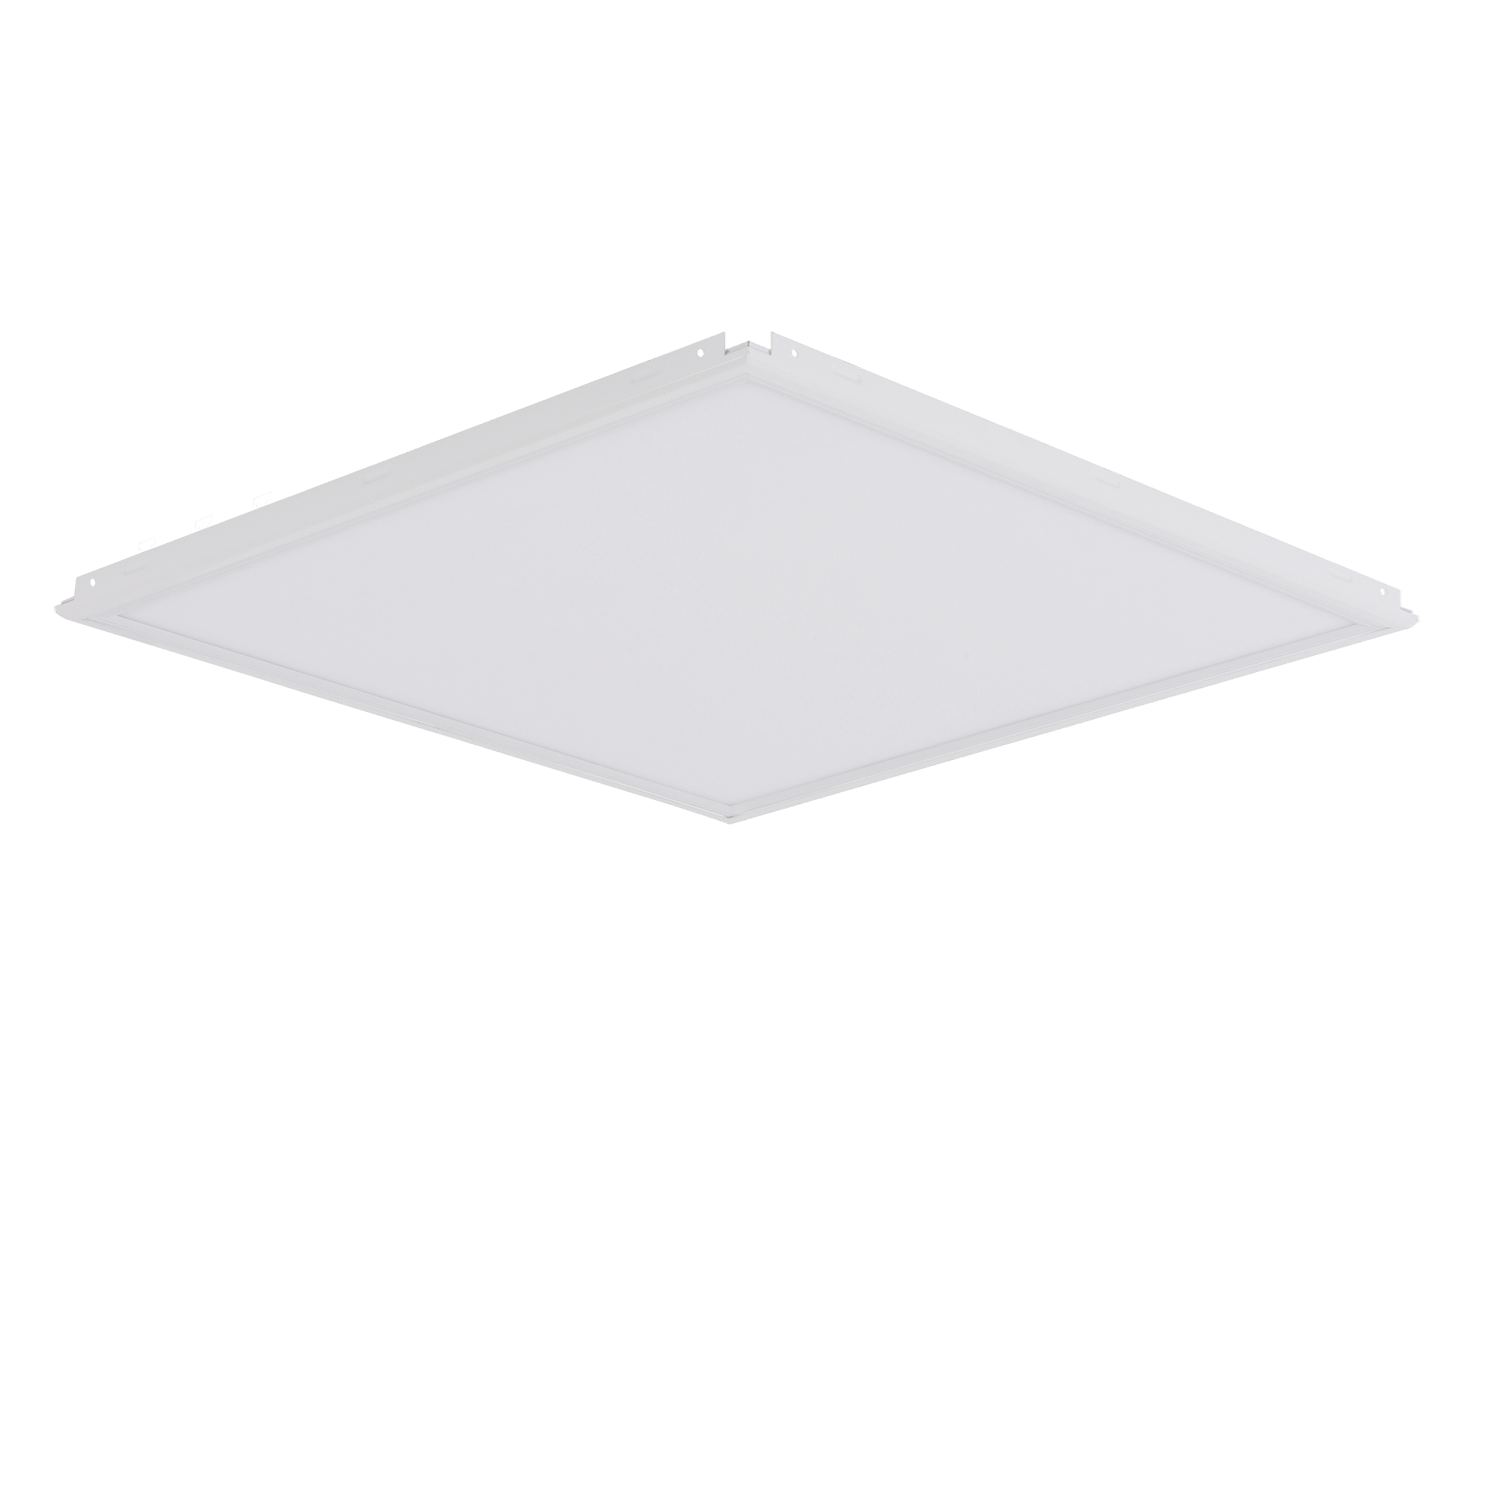 Mioled Edgelight Panel Metal Suspended Luminaires